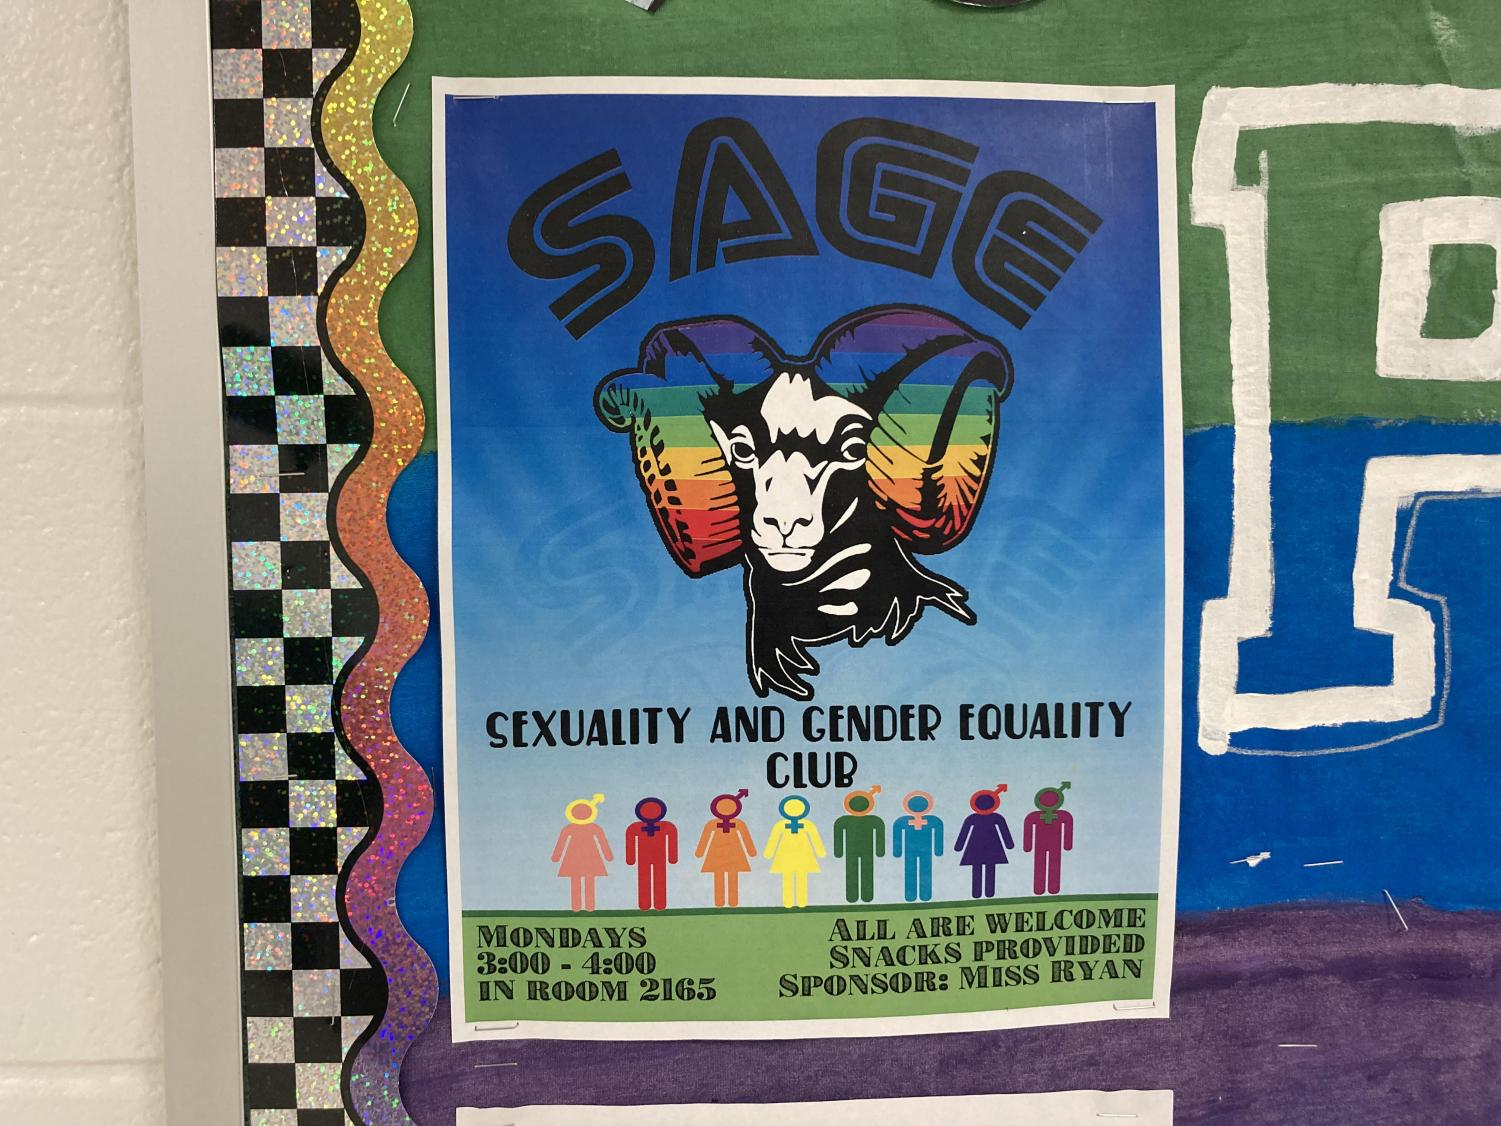 The posters of SAGE club are put up in the hallways for other students to see, which helps students know that there is a place for them to go to if they need help or just need a place to feel safe if they are part of the LGBTQ+ community. Additionally, all students are welcomed to join SAGE! Go check it out!